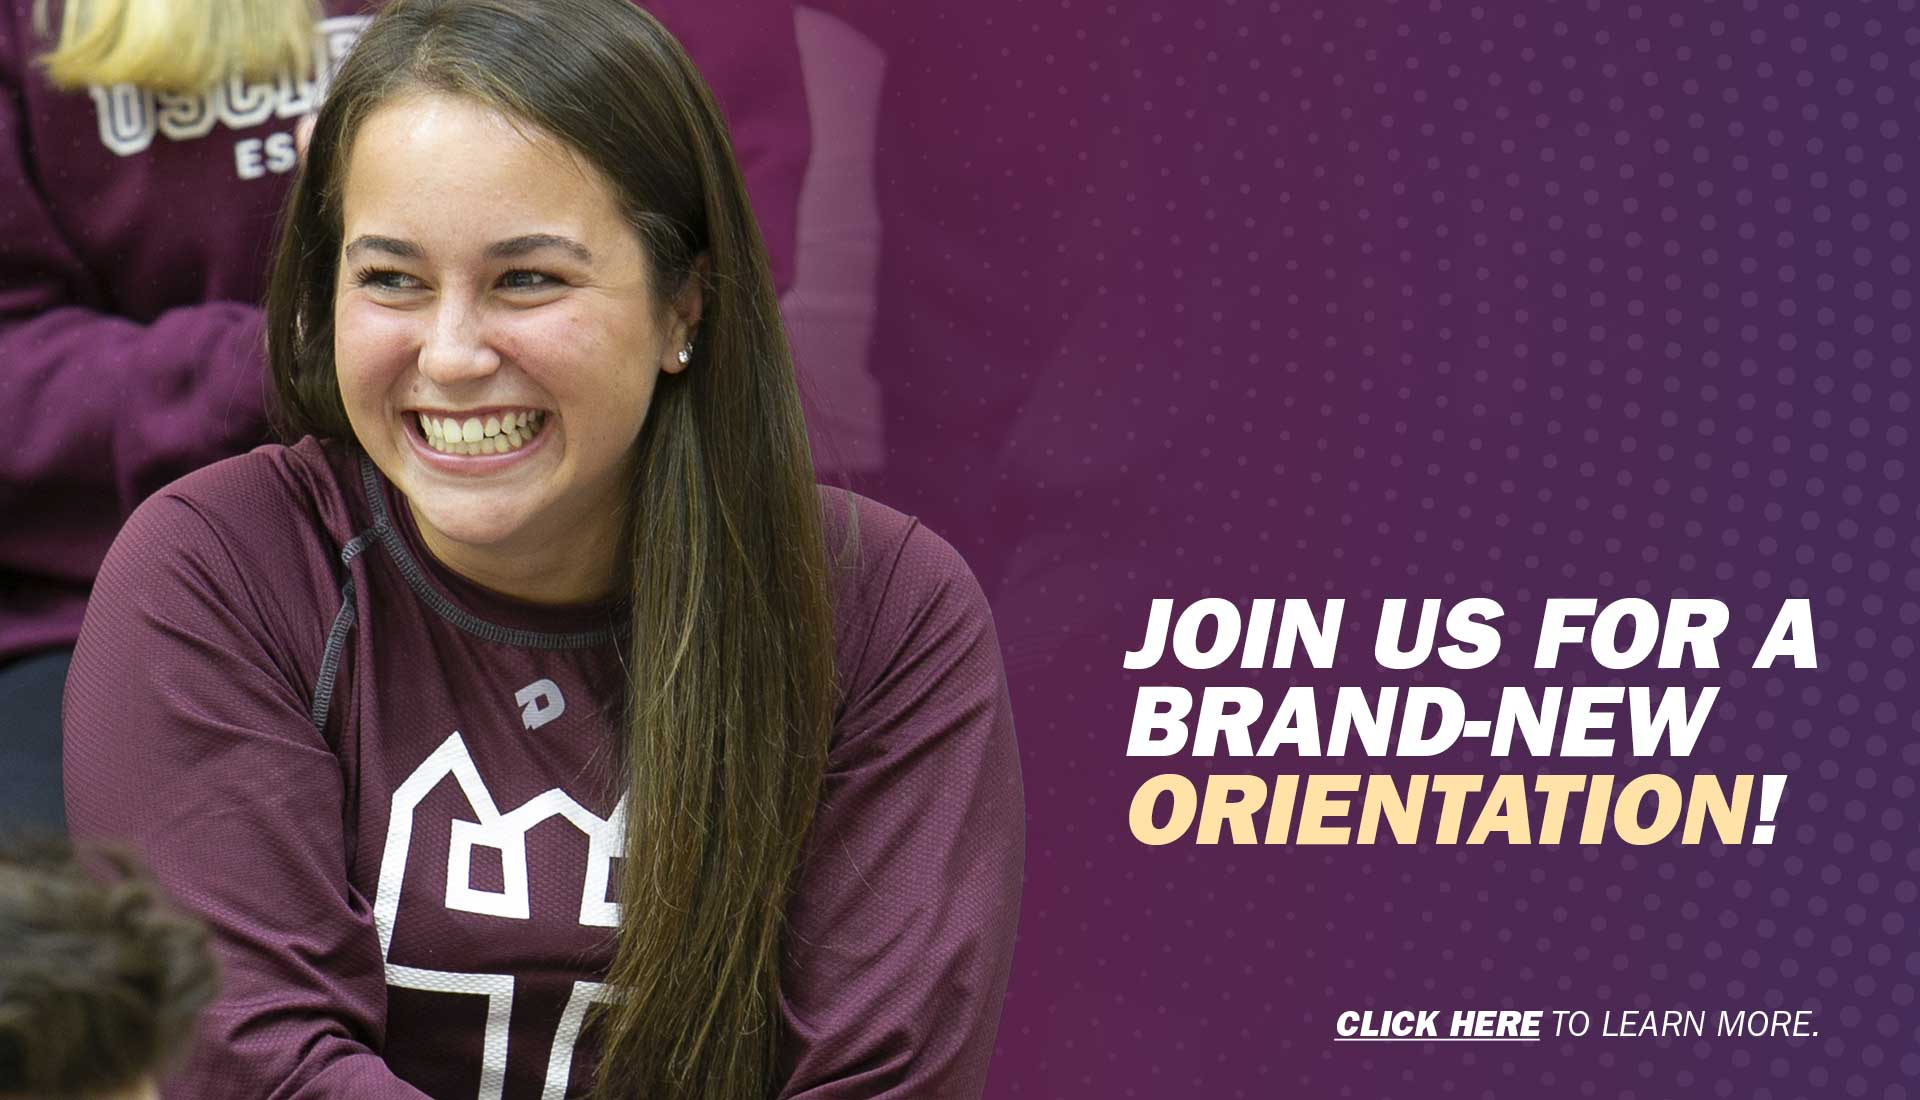 Join Us for a Brand-New Orientation. Click Here to Learn More.